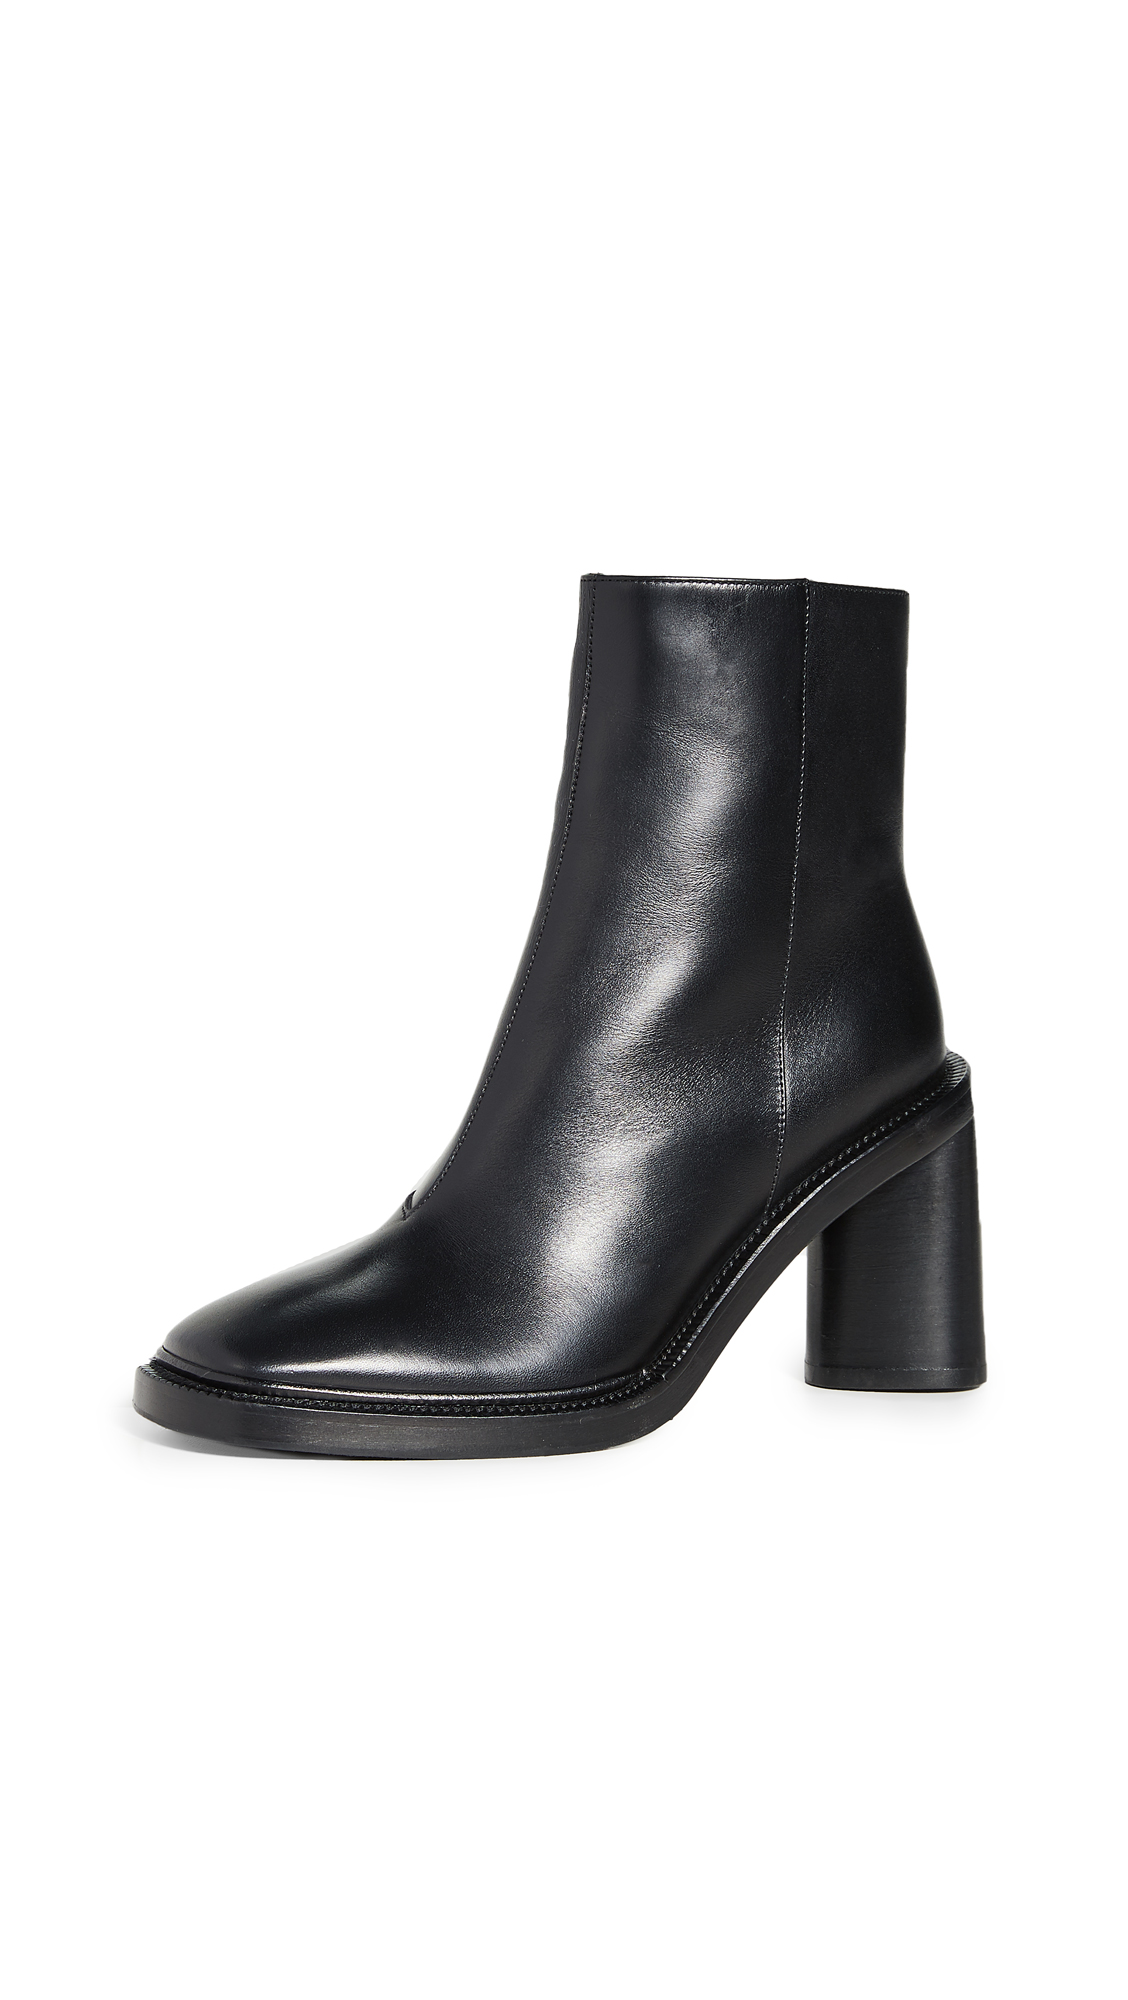 Acne Studios Booker Booties - Black